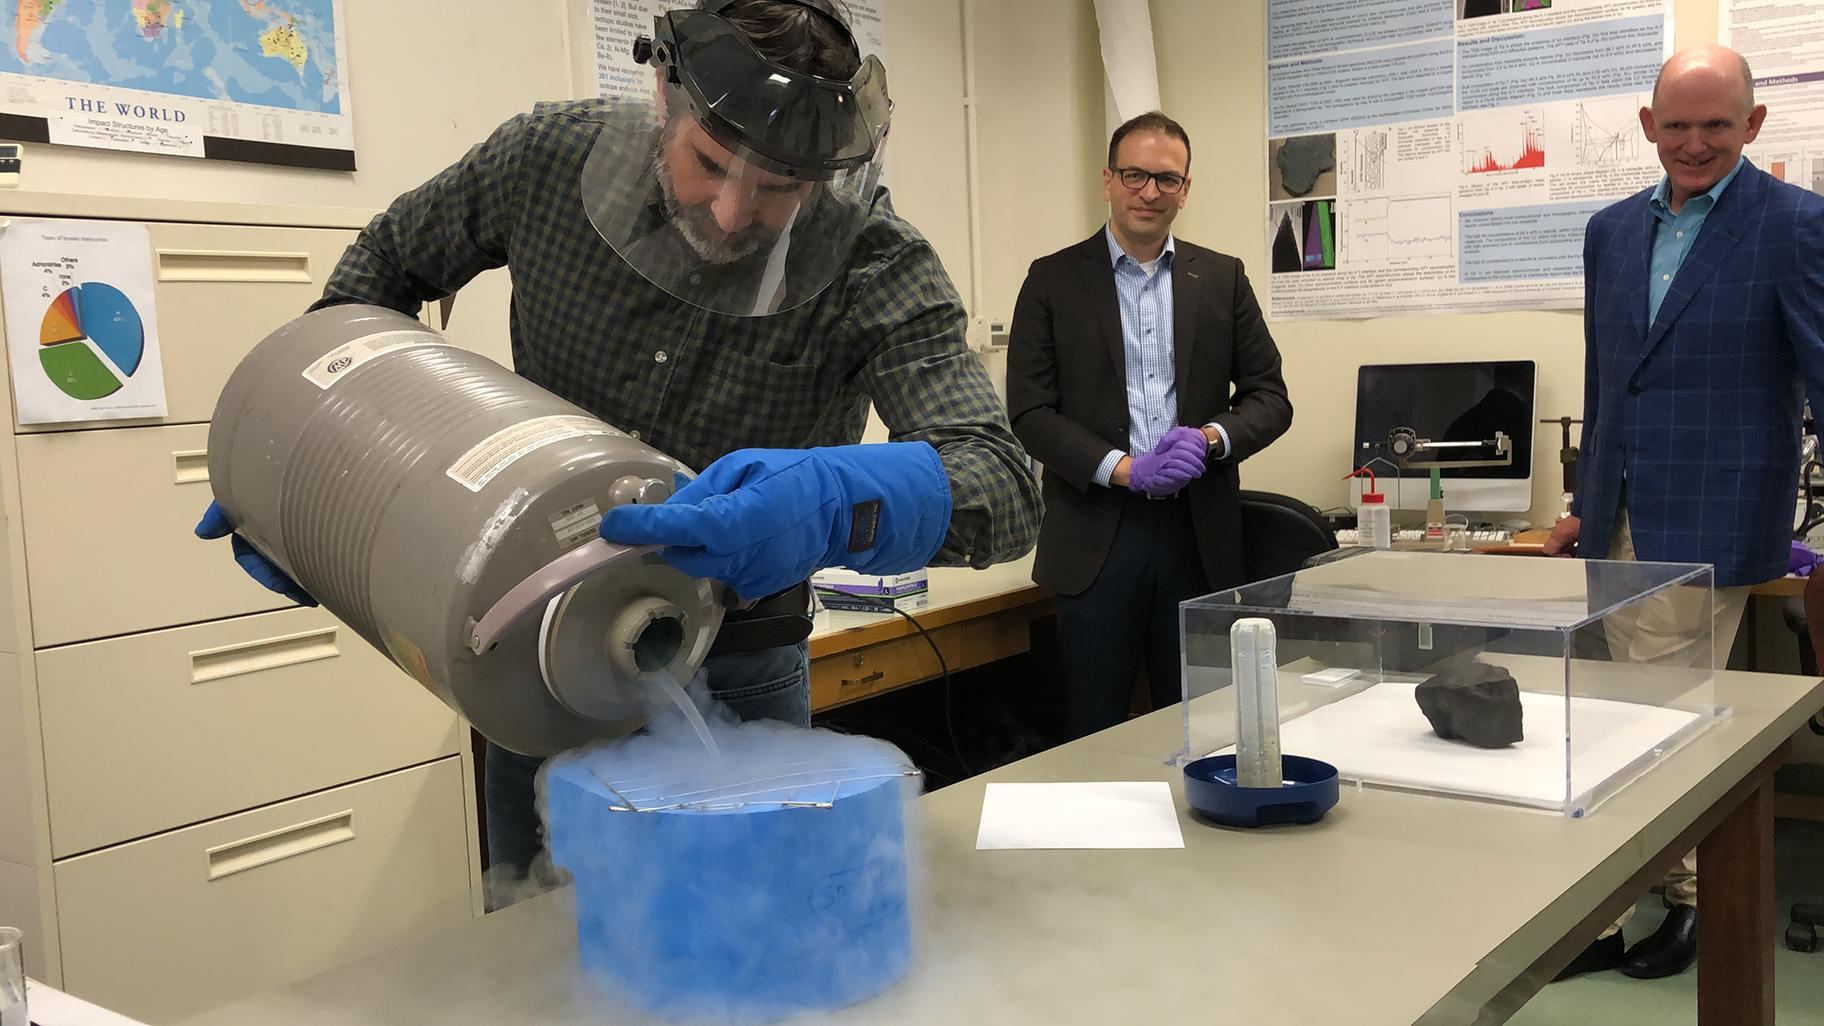 The Field Museum's Jim Holstein shows how the meteorite will be stored and preserved using liquid nitrogen cooled to negative 320 degrees Fahrenheit. (Alex Ruppenthal / WTTW News)